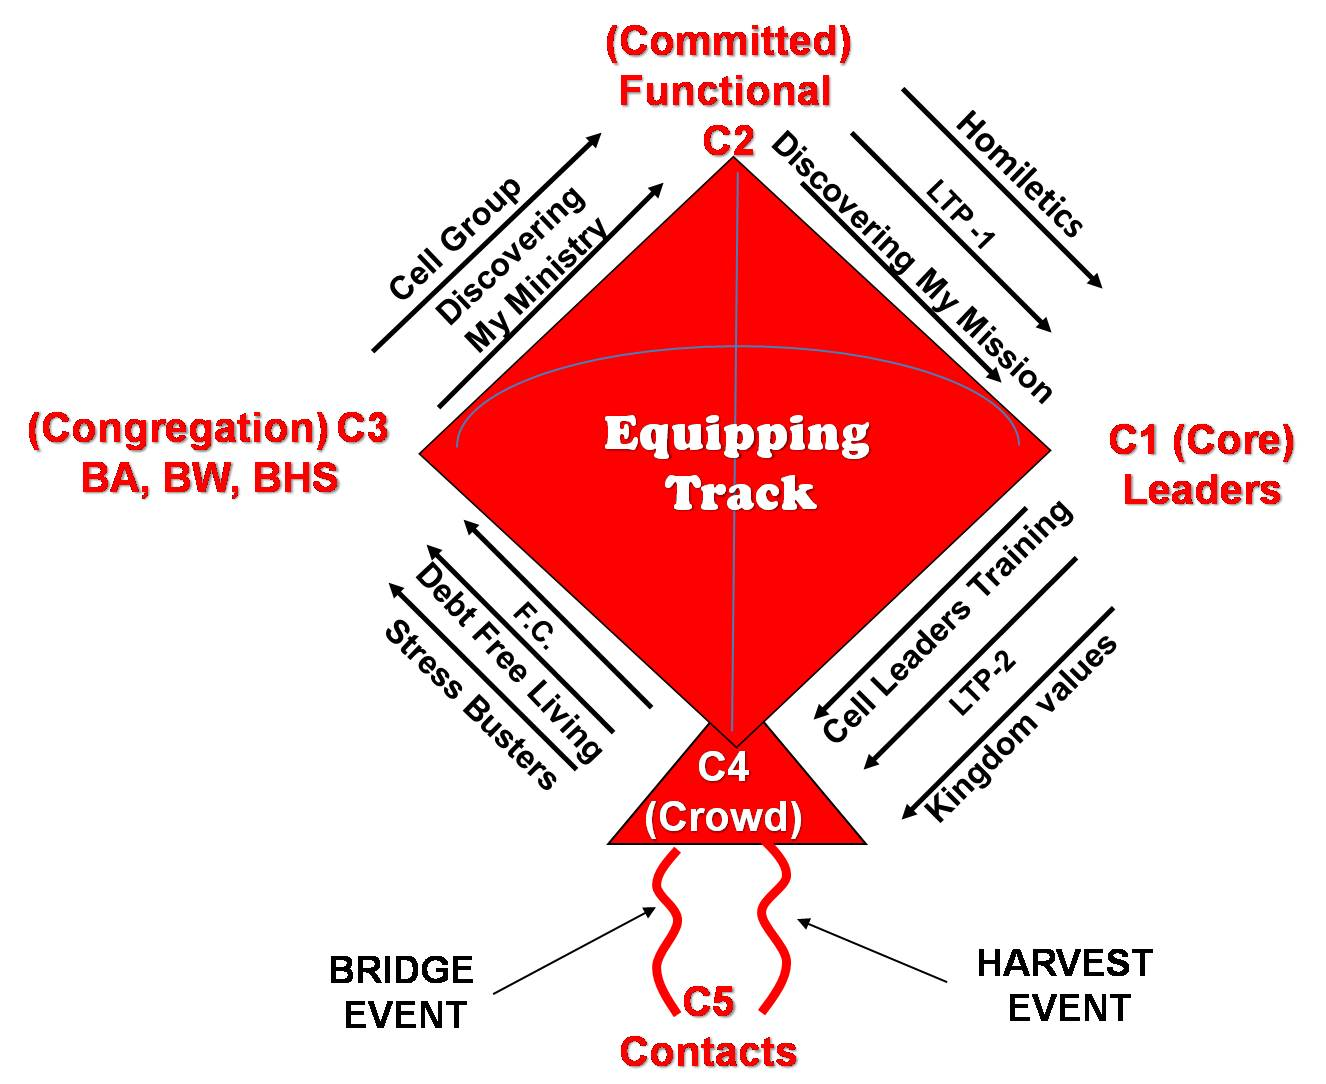 Equipping Tracks